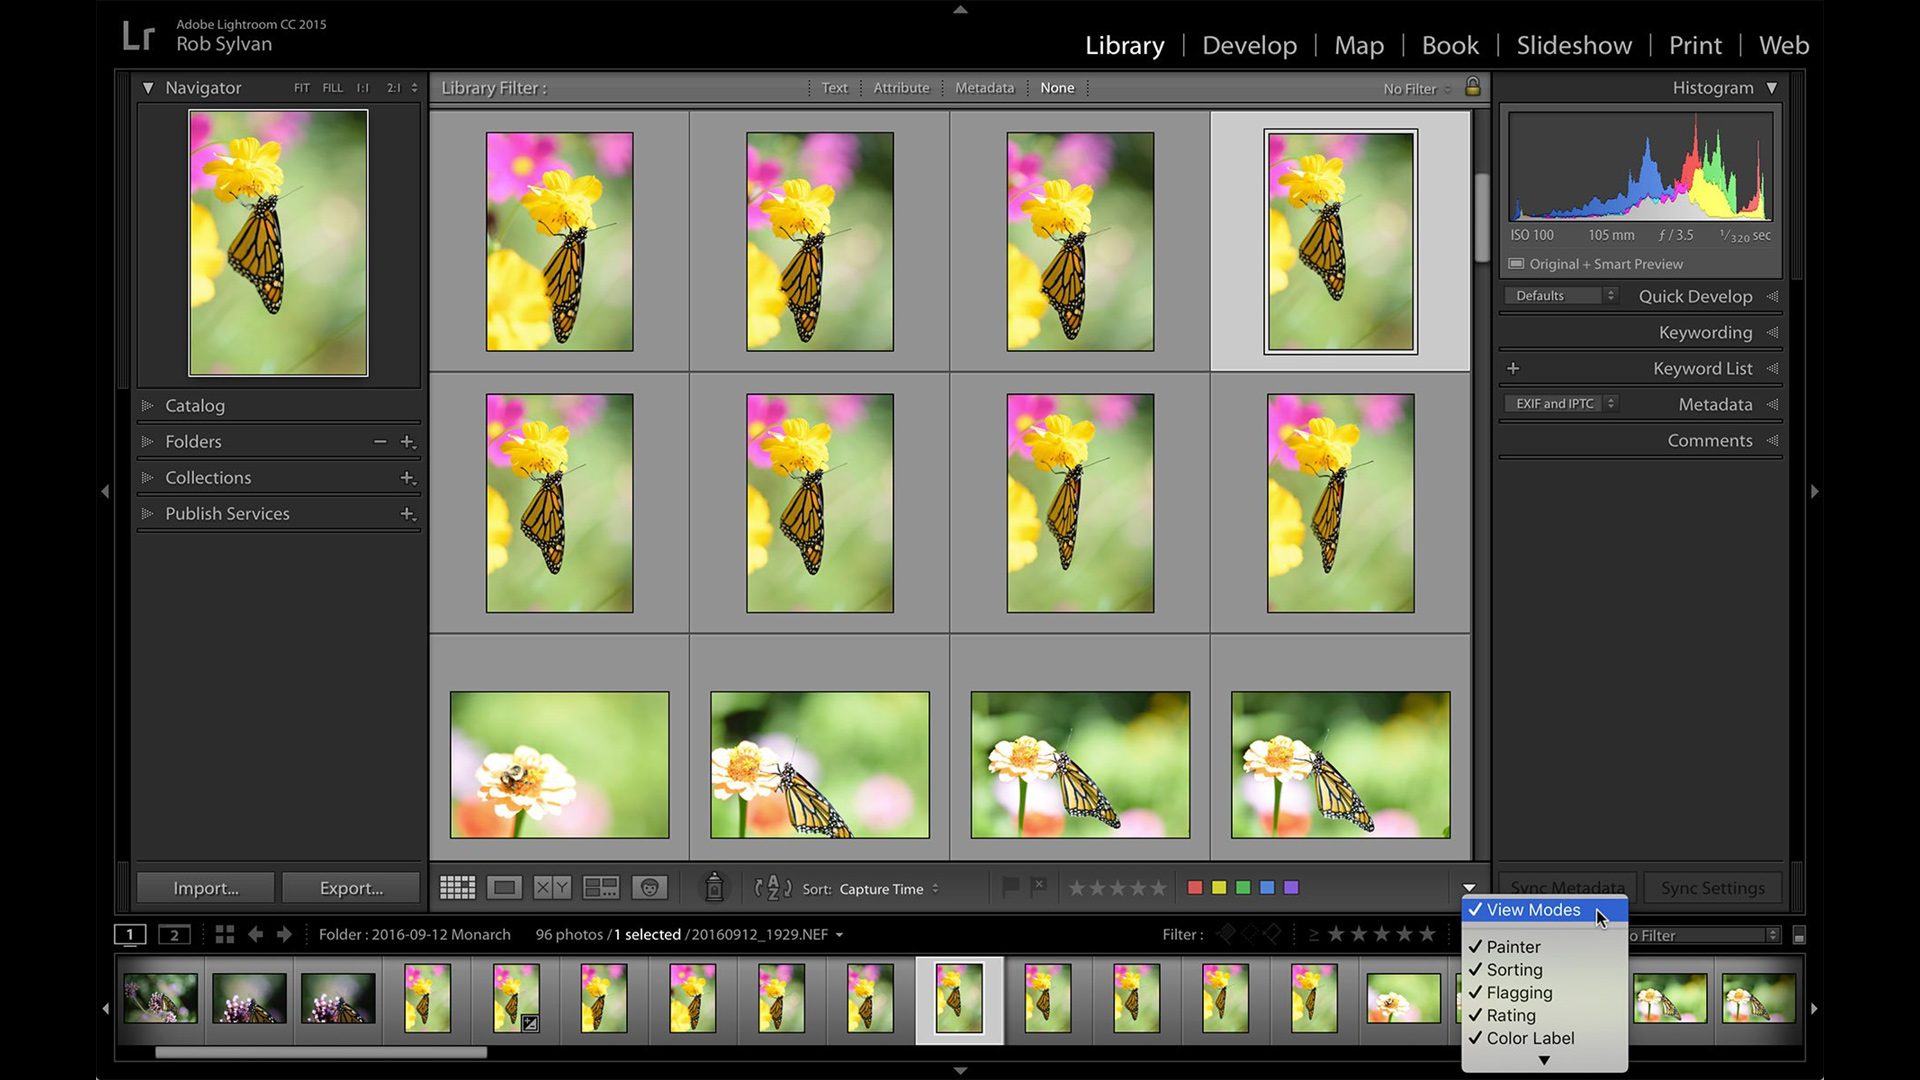 Lightroom's Grid and Loupe View Modes